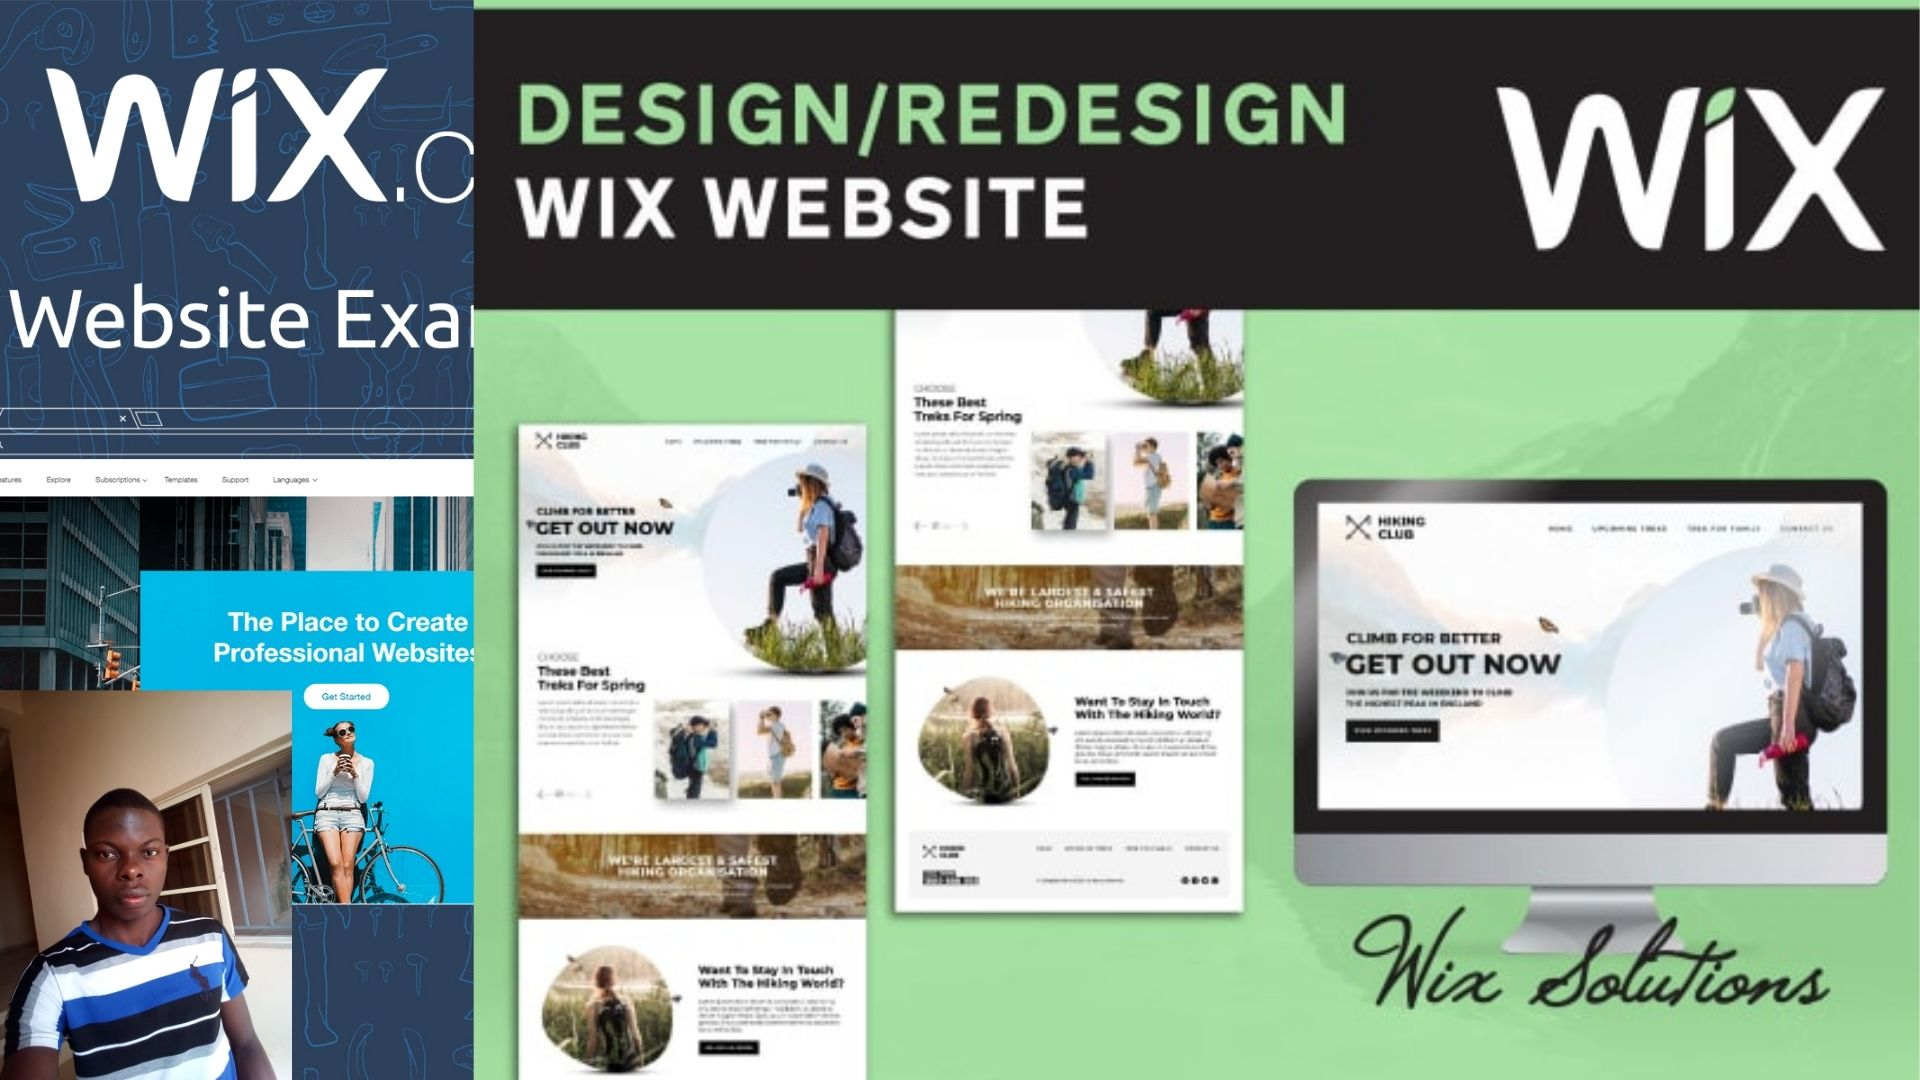 I will create or redesign wix website and wix ecommerce website, FiverrBox